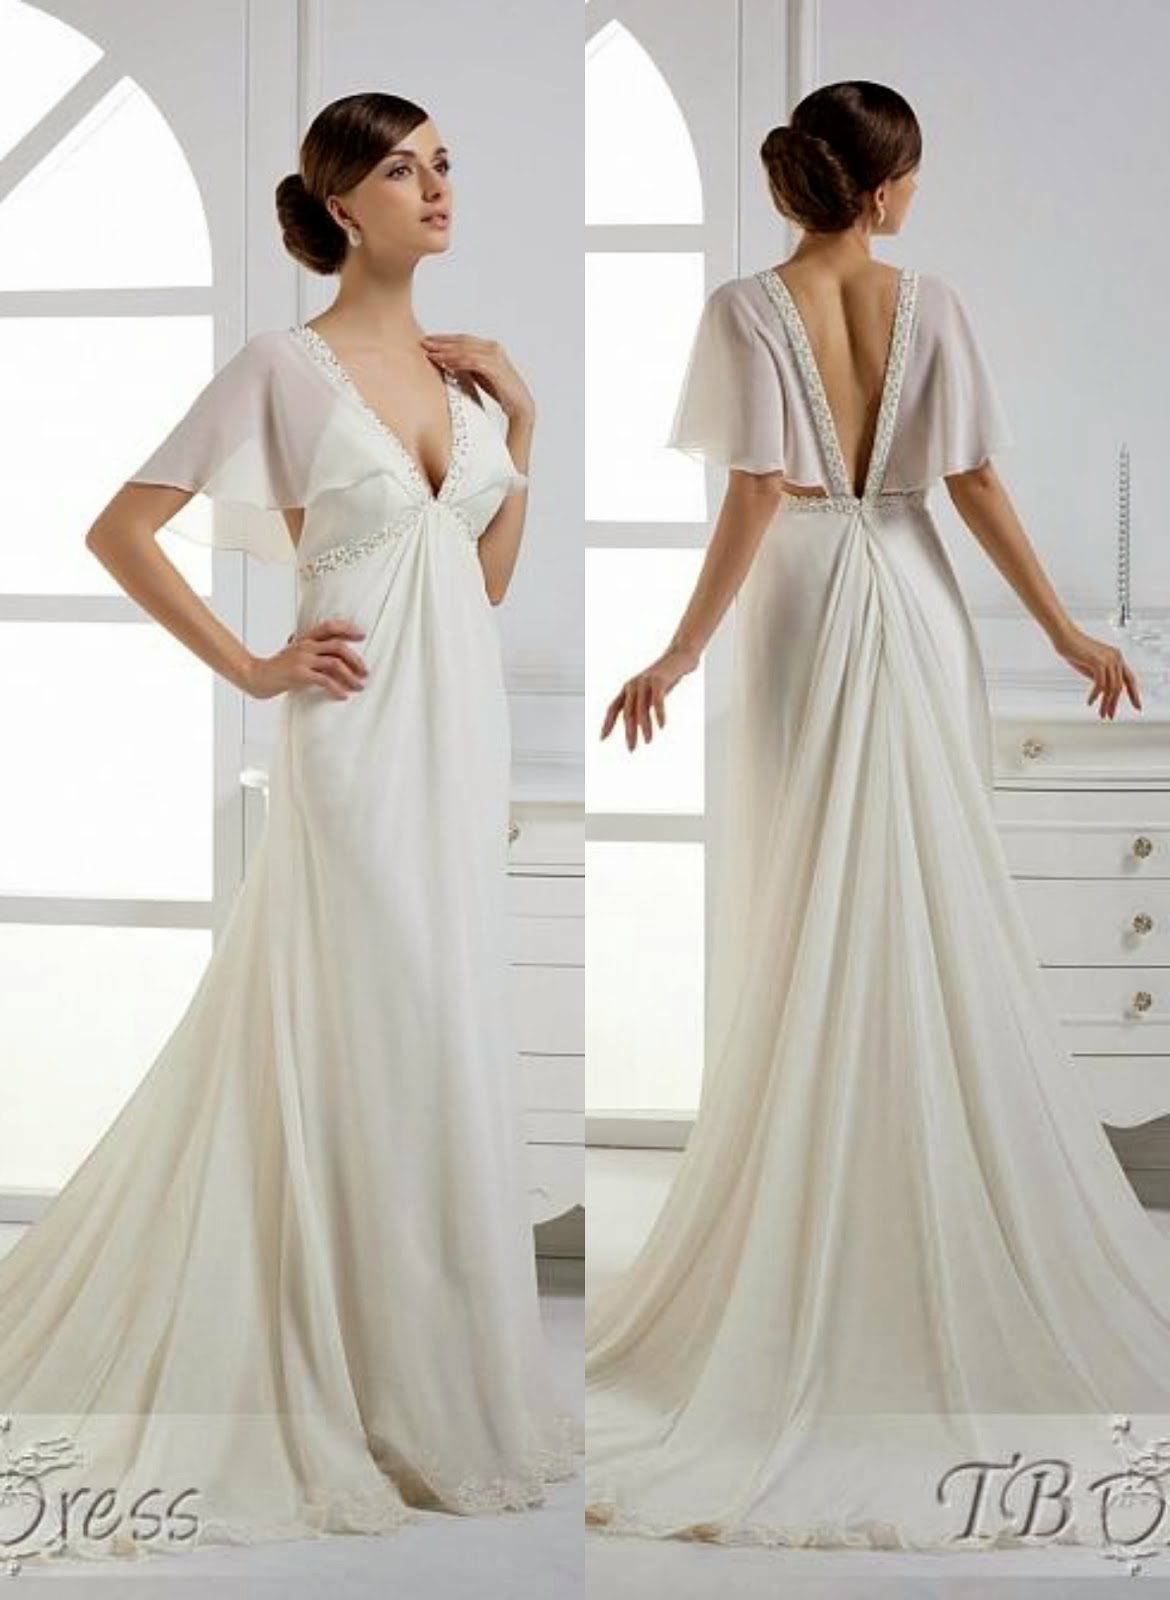 Maternity Wedding Dresses | New Stylish Dresses